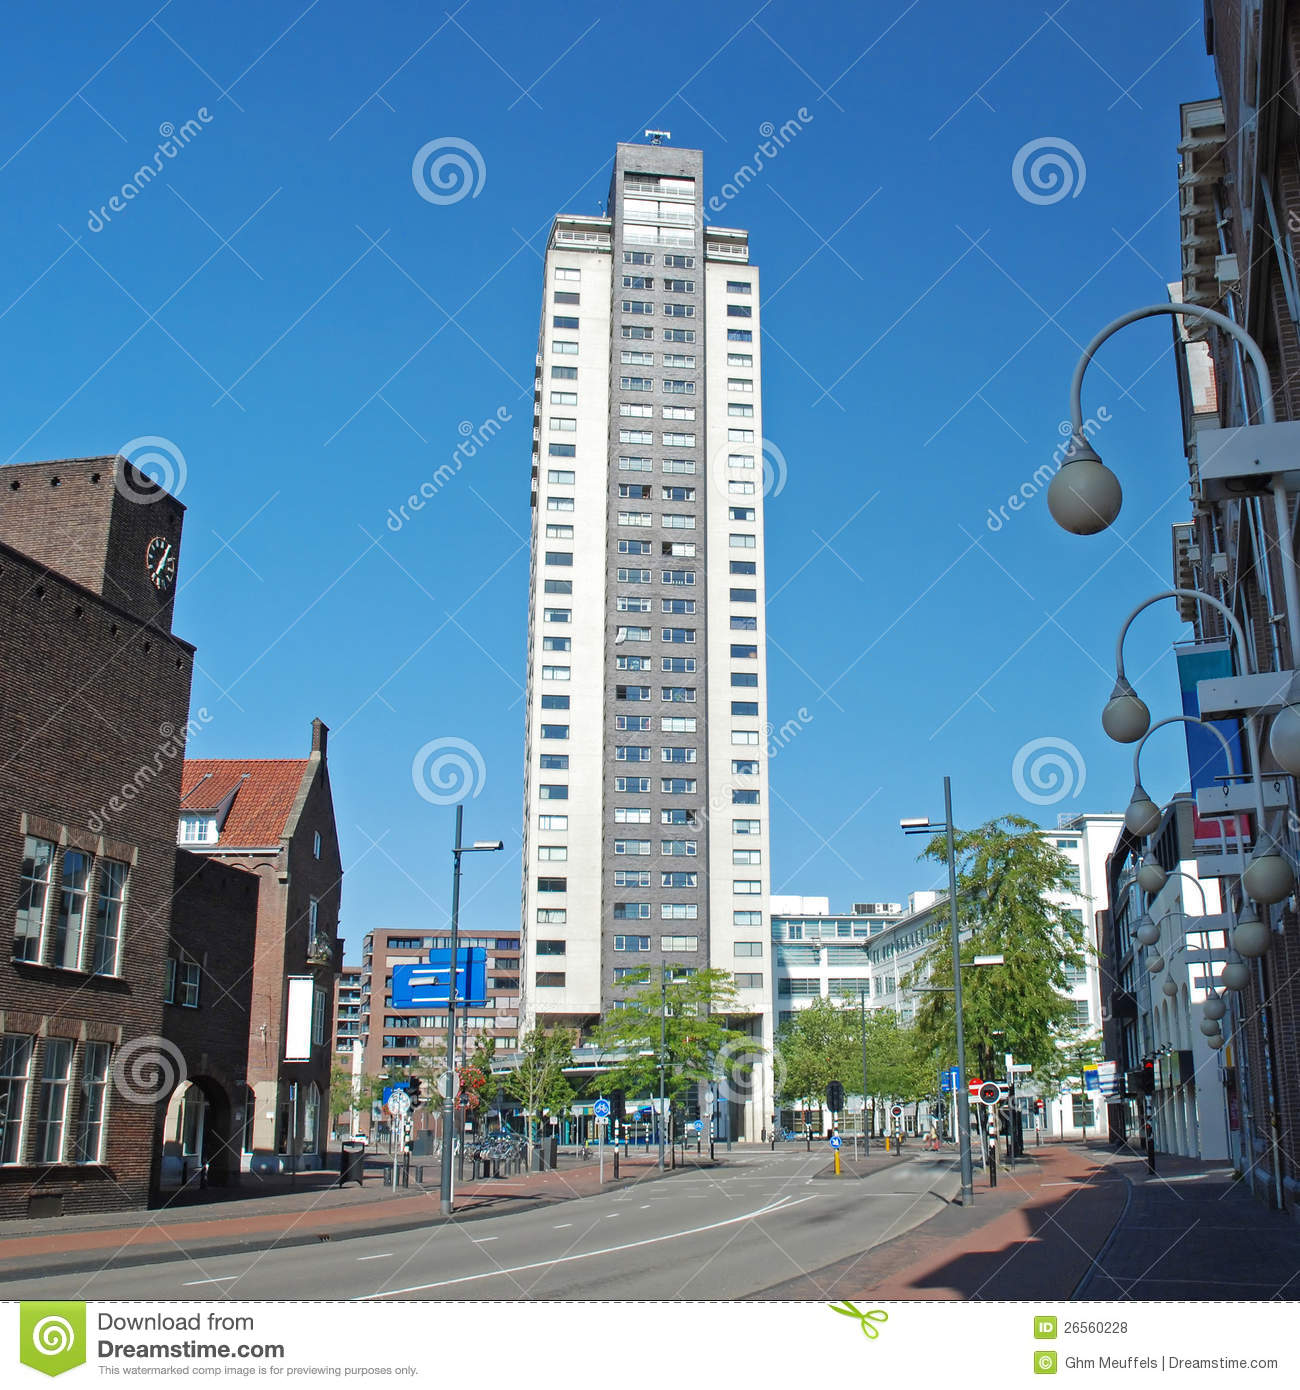 Philips Light Tower In Eindhoven: Eindhoven Centre-High Regent Building-Witte Dame Royalty